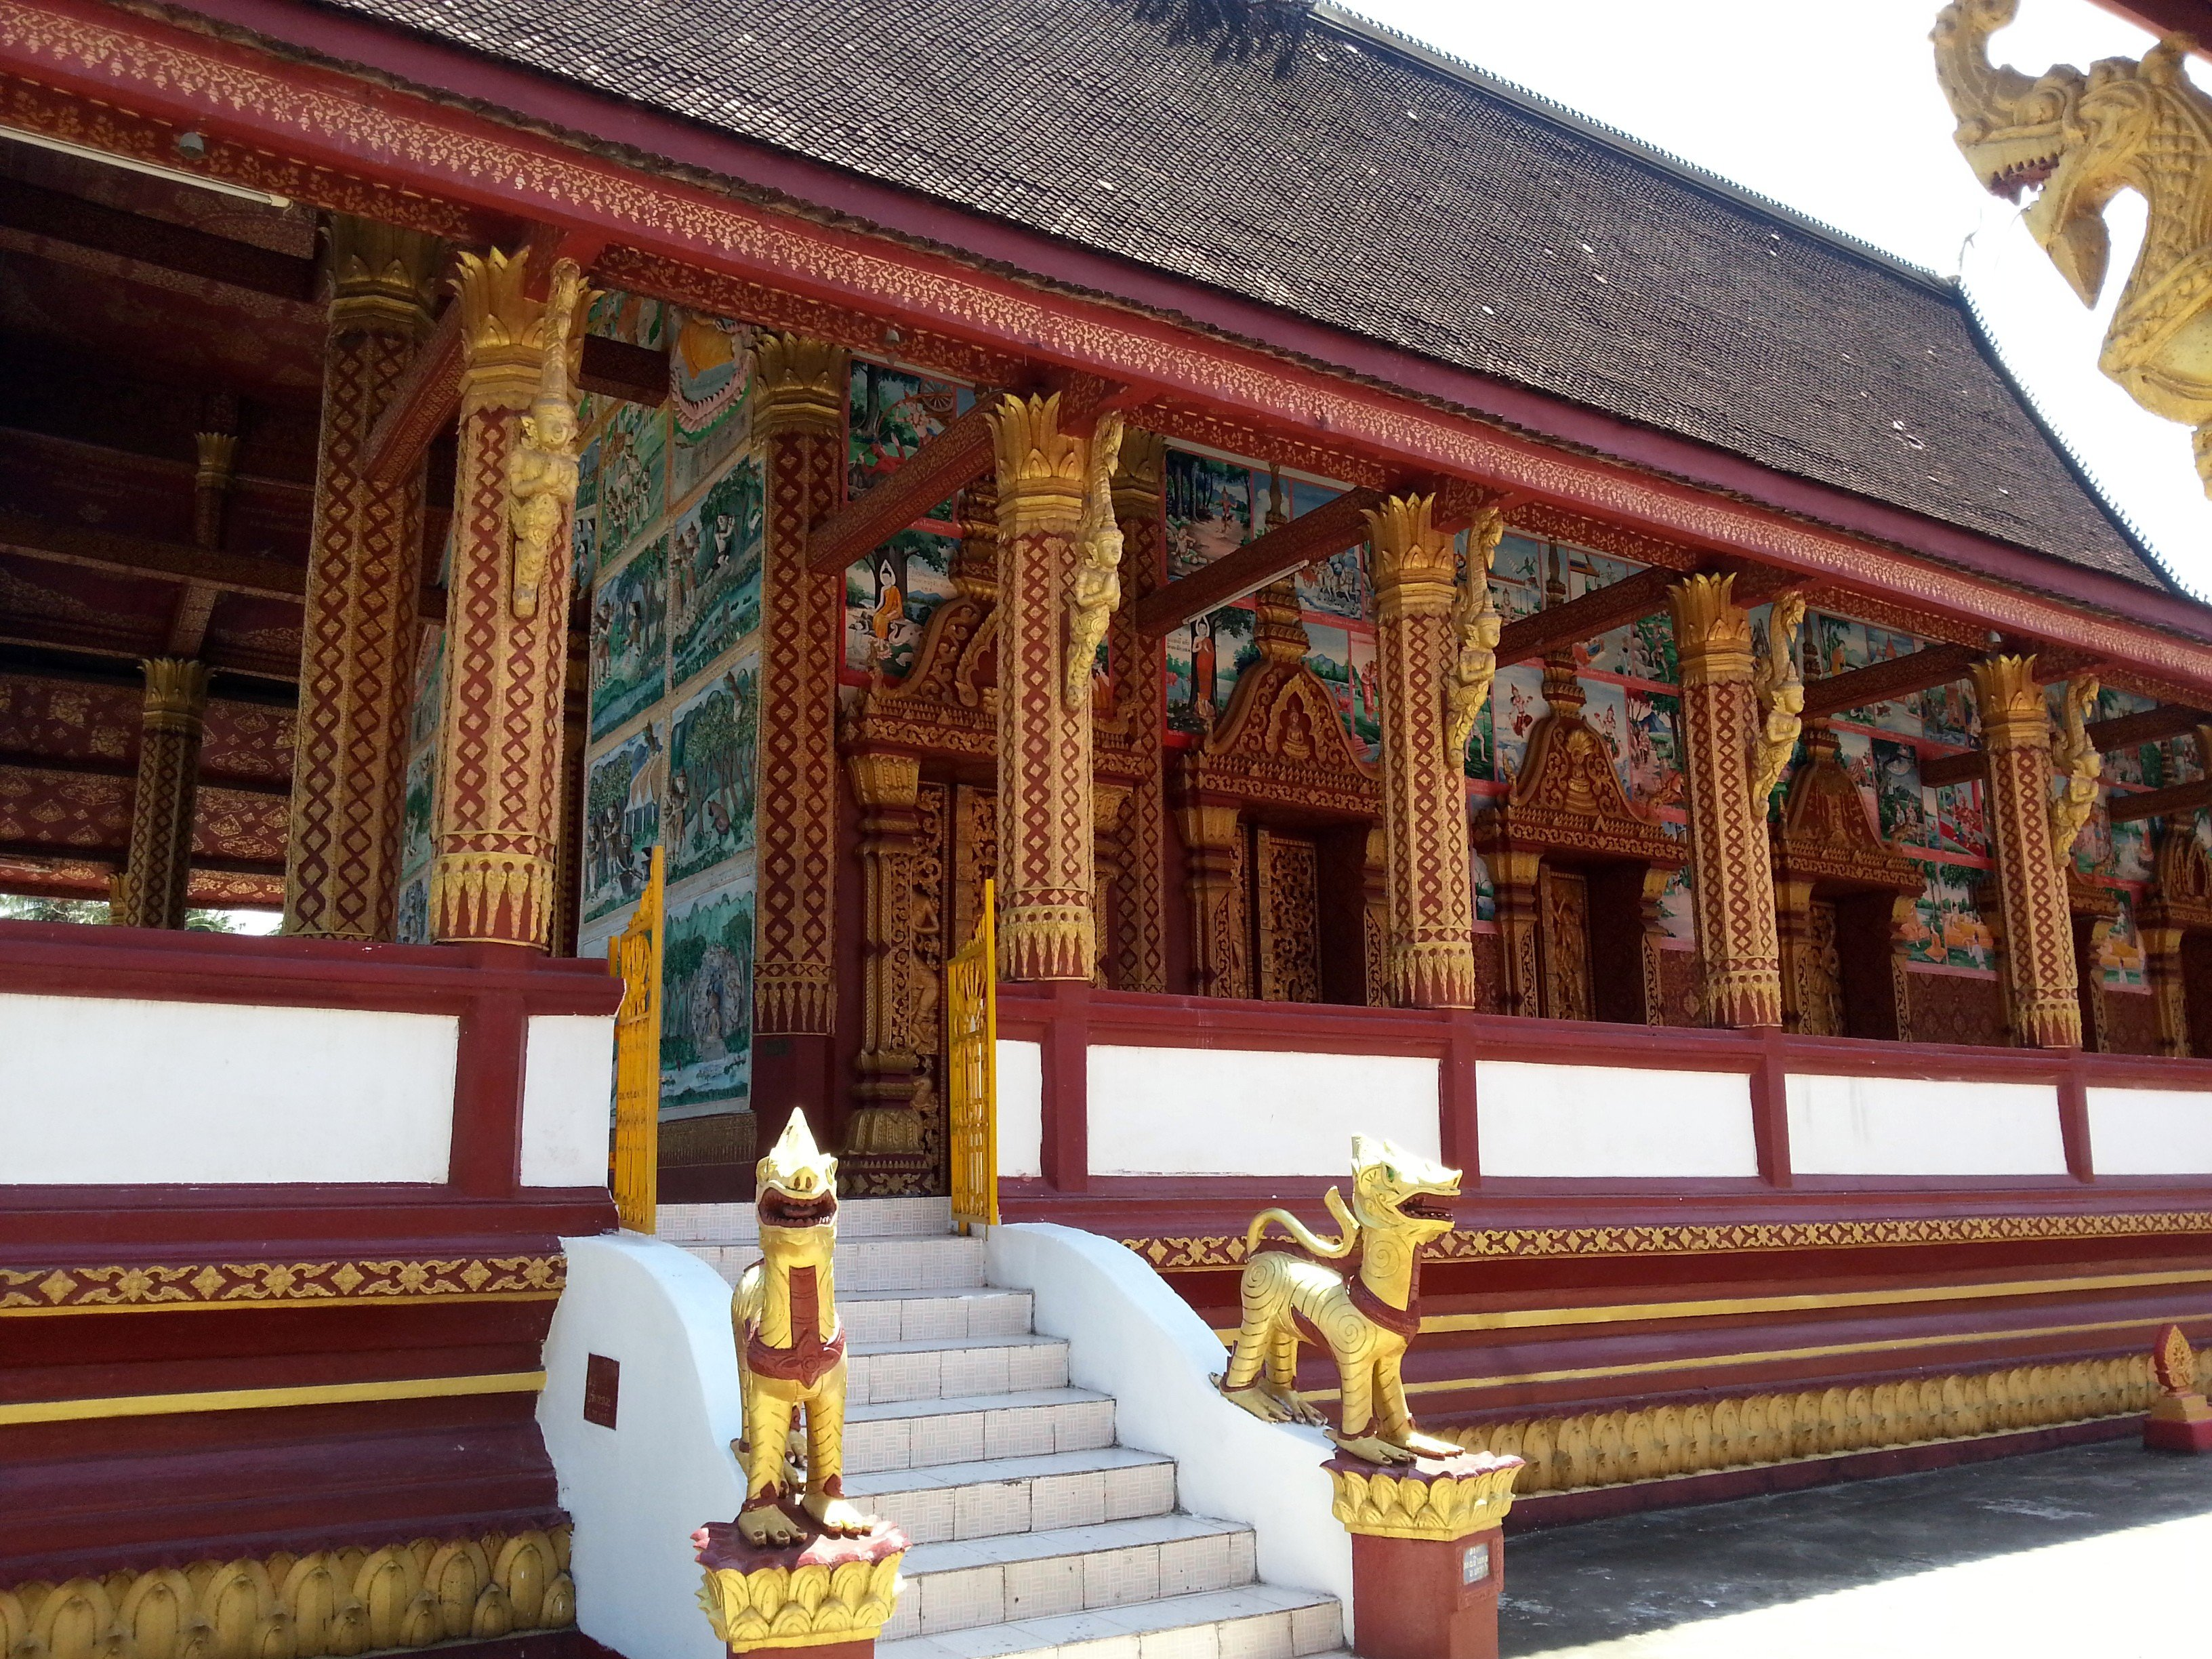 Side view of the congregation hall at Wat Manorom